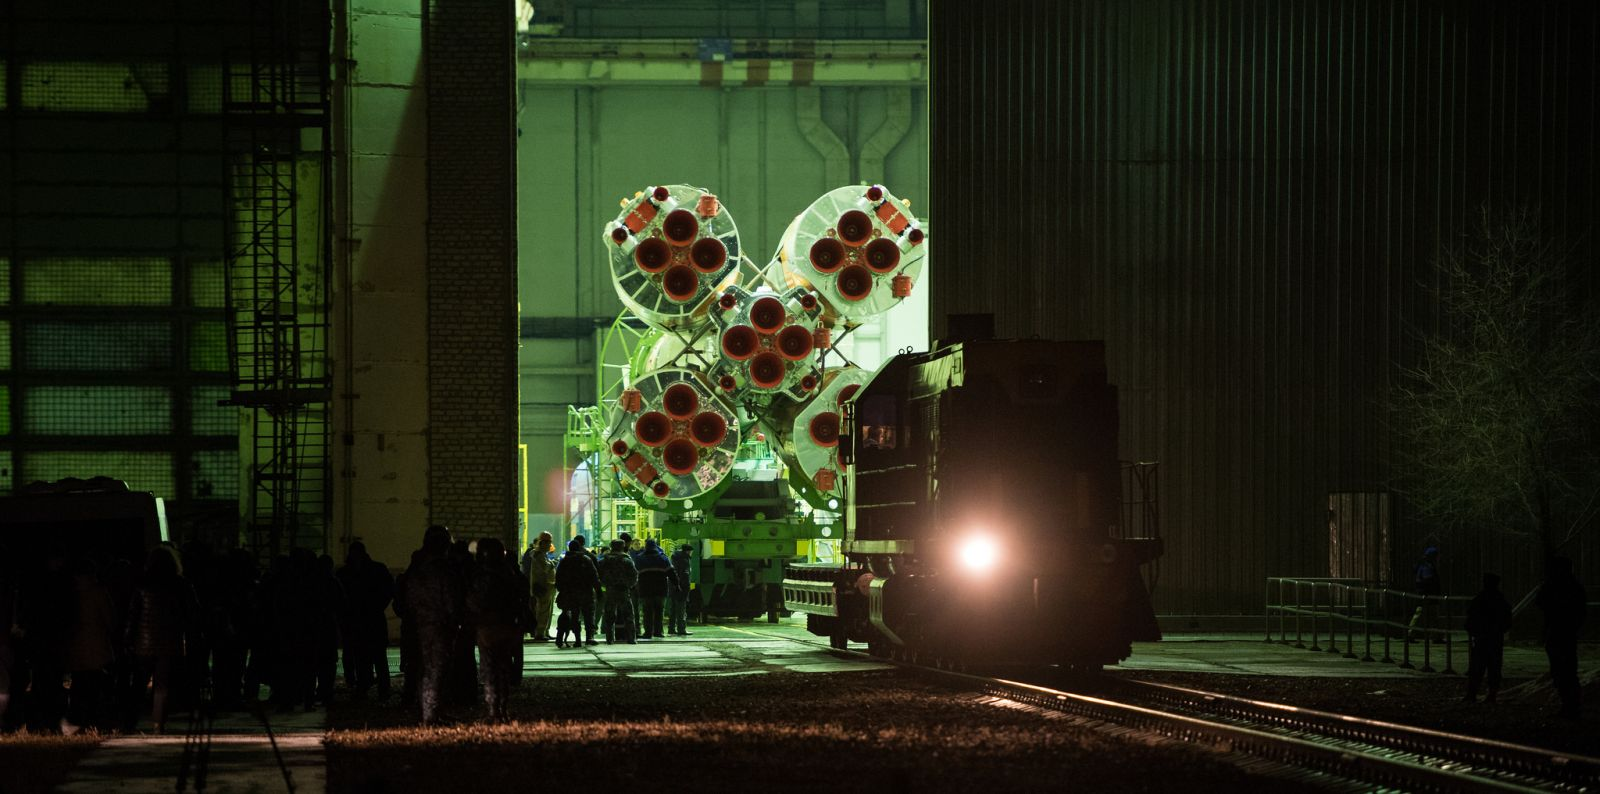 On the morning of March 19, 2018, the Soyuz-FG rocket with Soyuz MS-08 is rolled out from Building 112. Photo Credit: Joel Kowsky / NASA